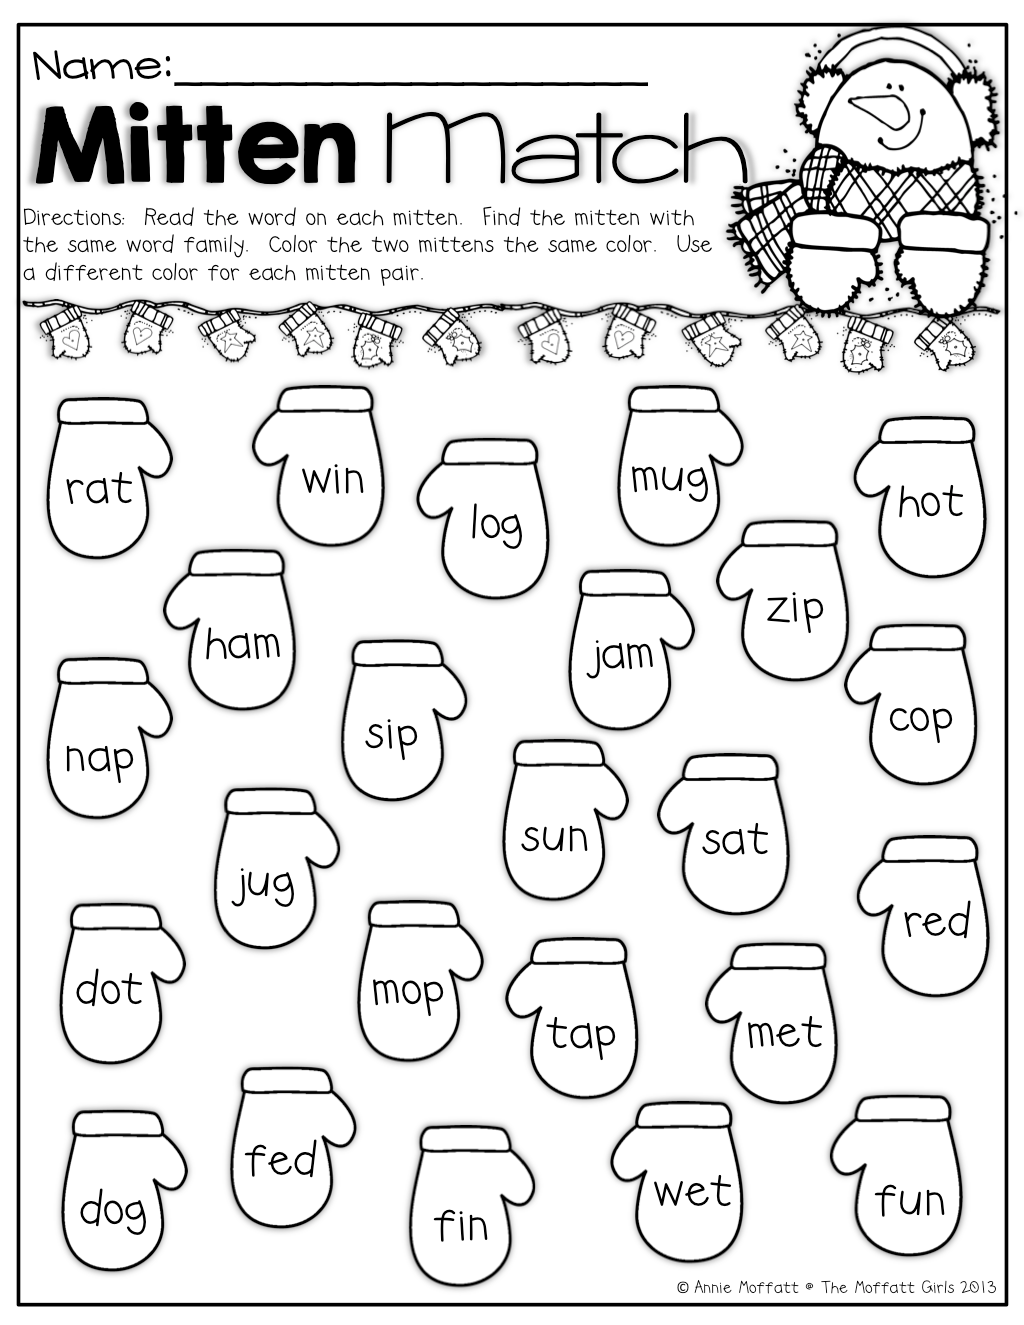 Mitten Match! Color the pair of mittens that have the same